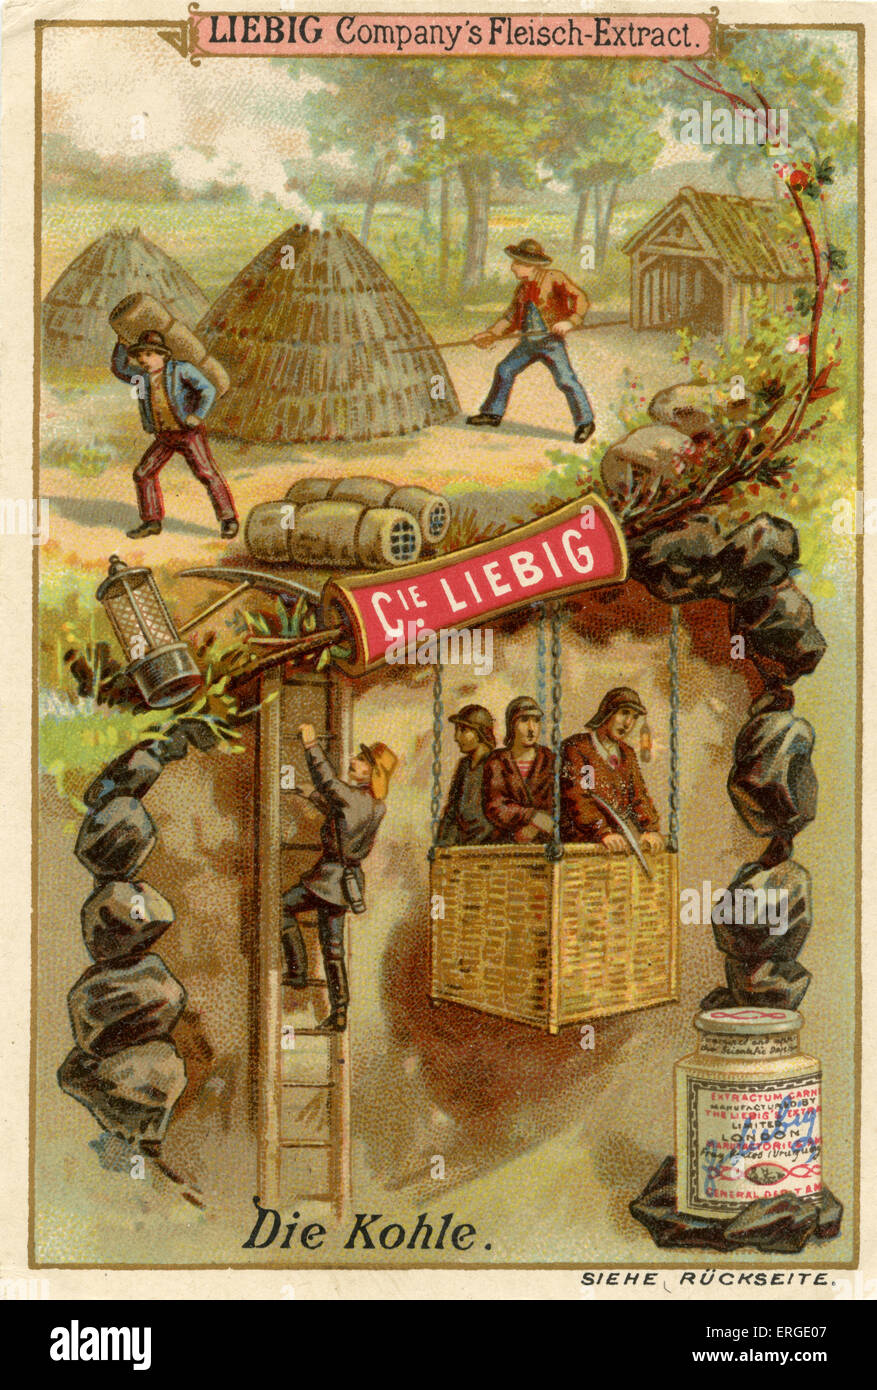 Coal ('Die Kohle') - Liebig Company collectible cards,  natural resources series. Published 1892. - Stock Image